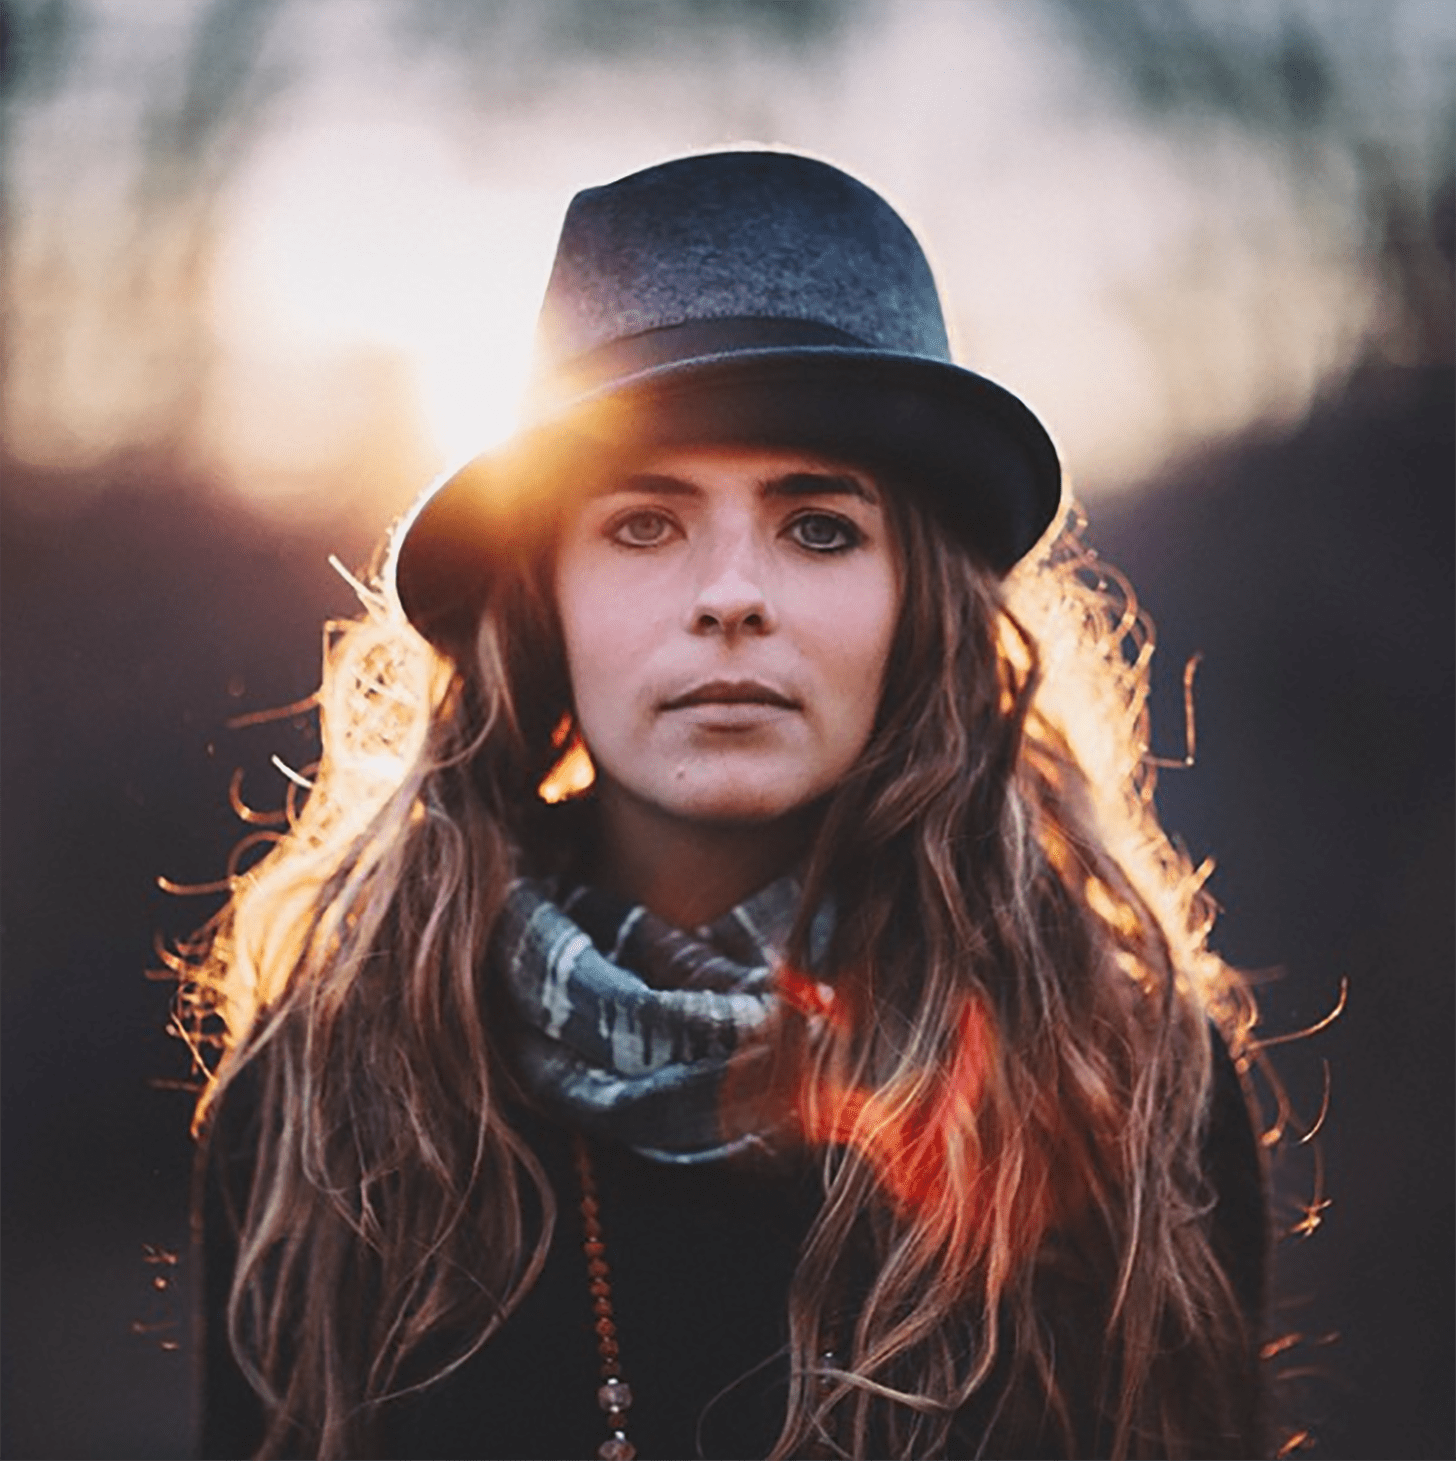 A woman wearing a felt hat and a scarf by Zach Allia